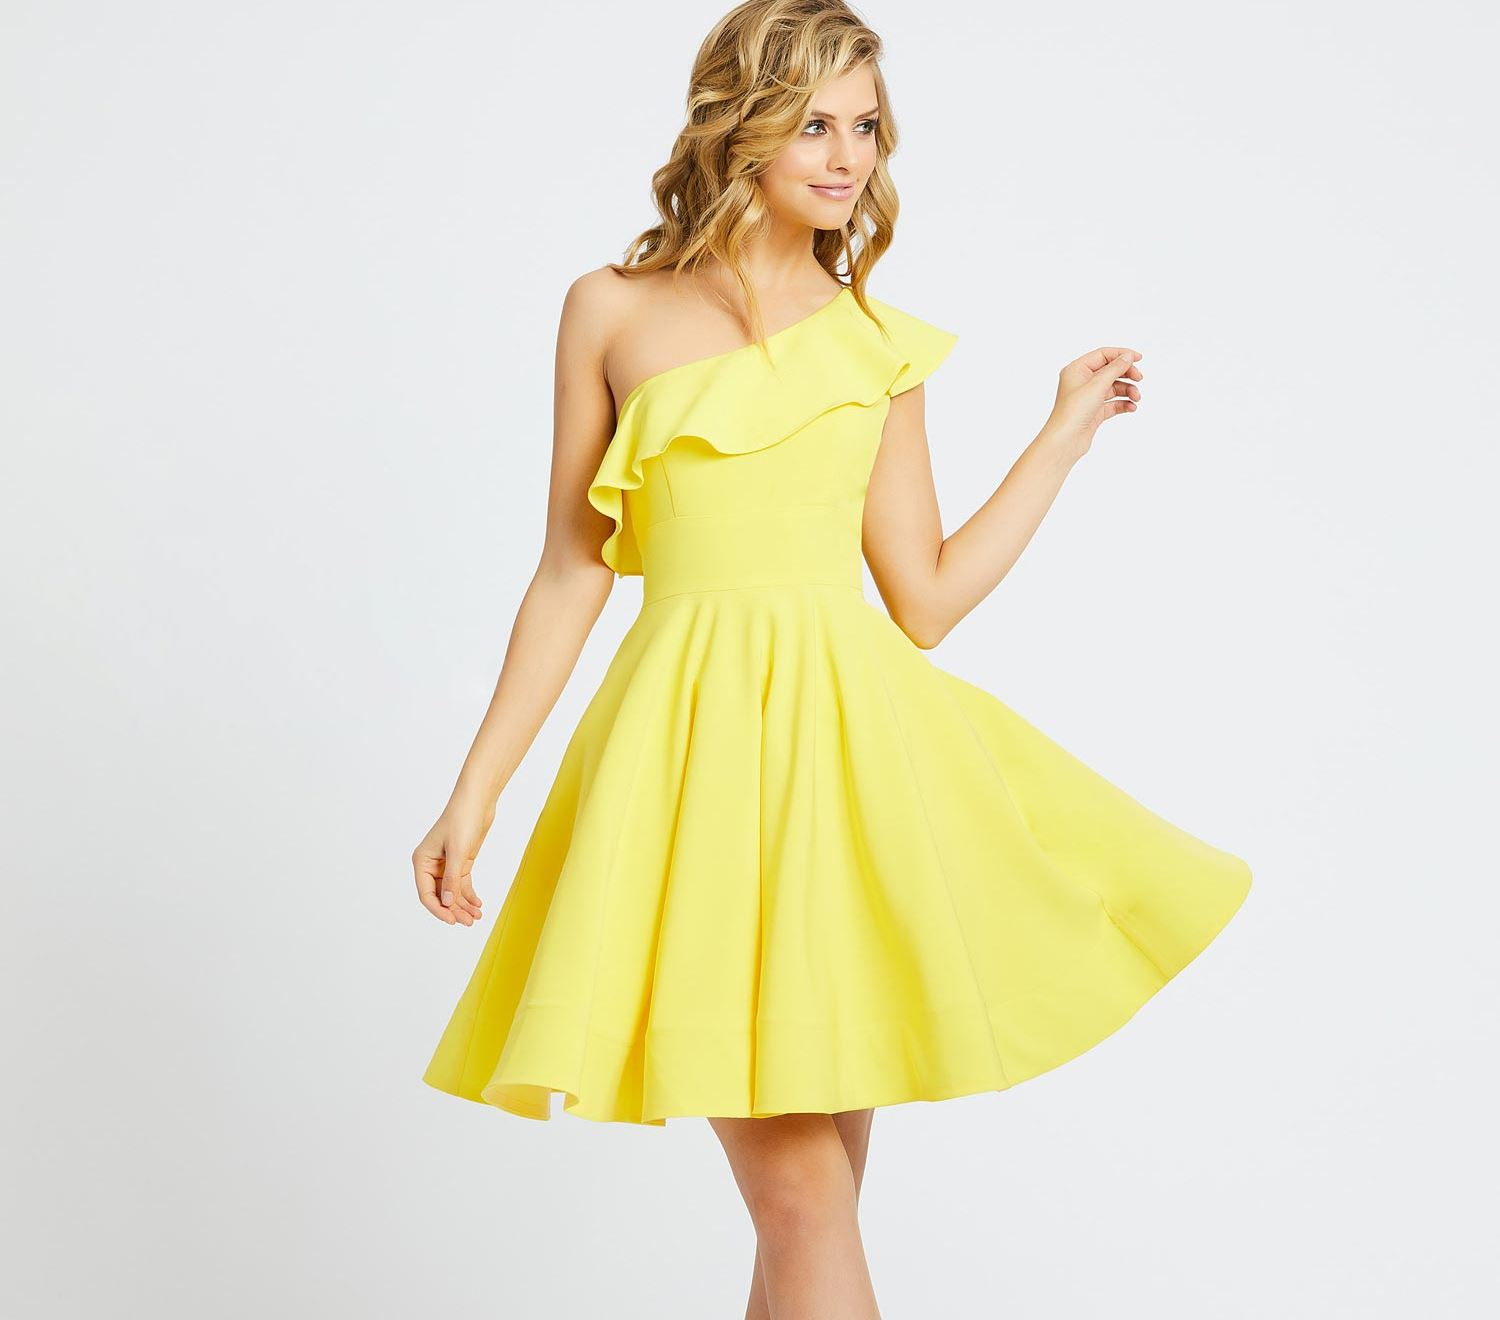 Model in yellow Mac Duggal dresses